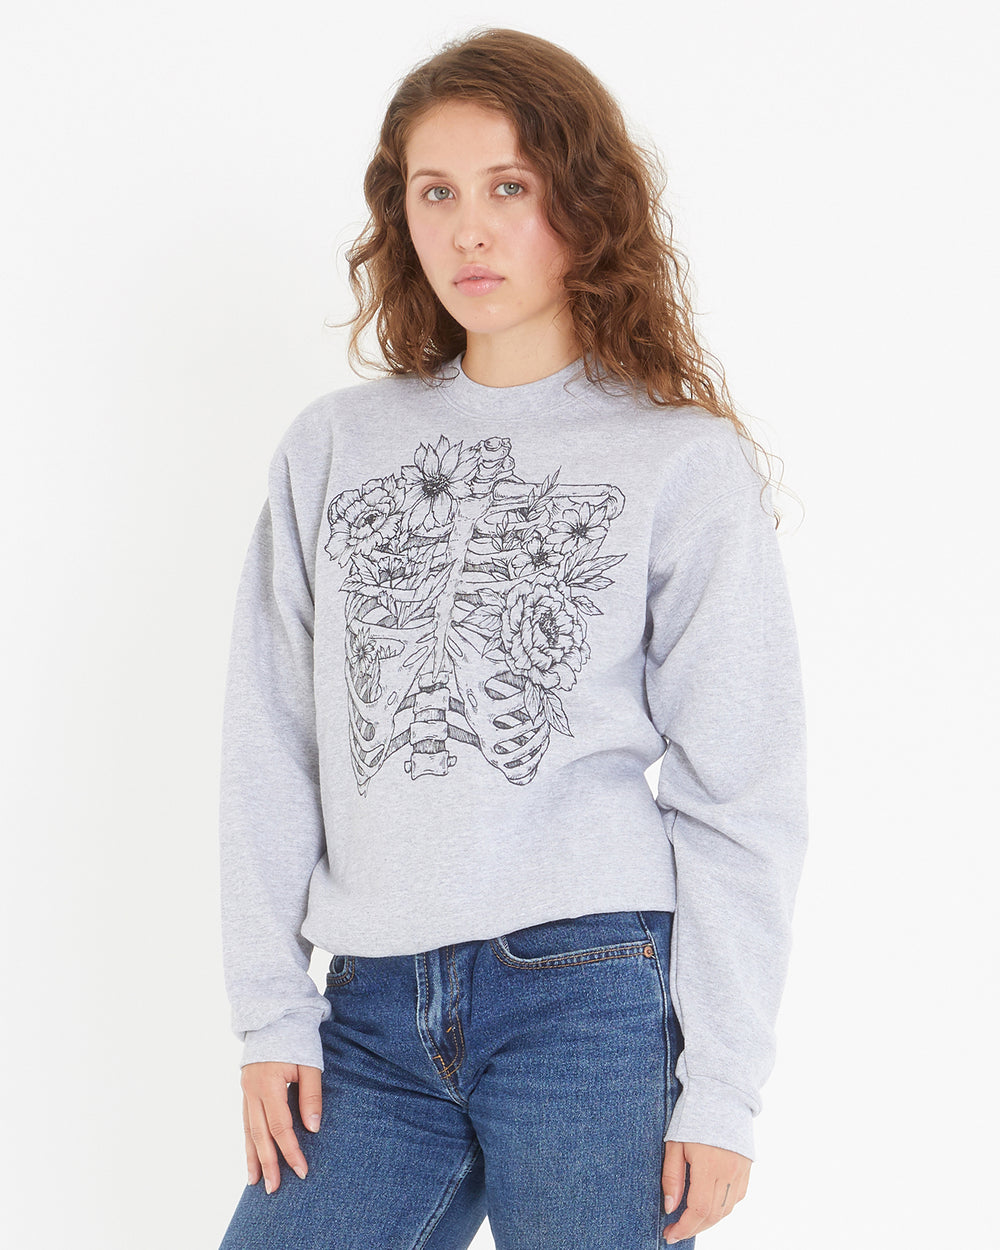 Skeleton Garden Sweatshirt